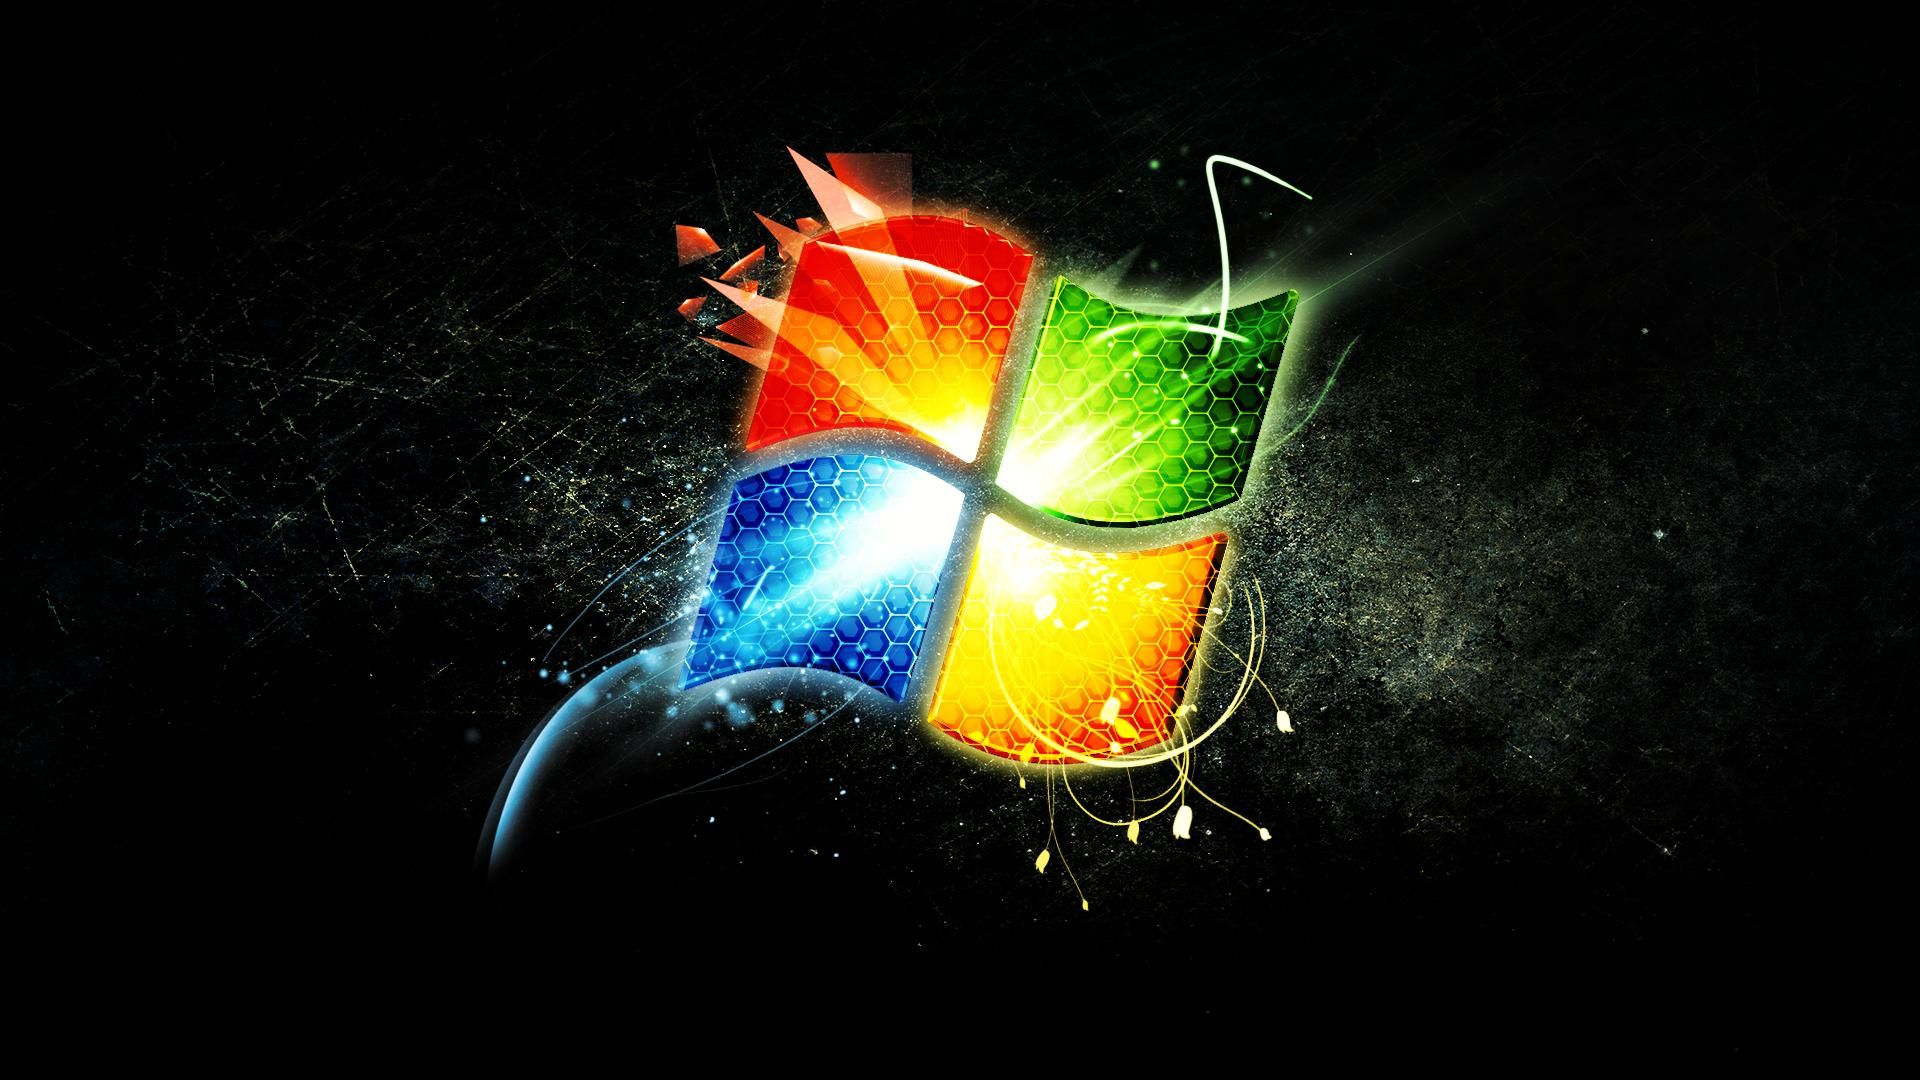 Gif Backgrounds Windows 7 Wallpaper Cave Ordenadores